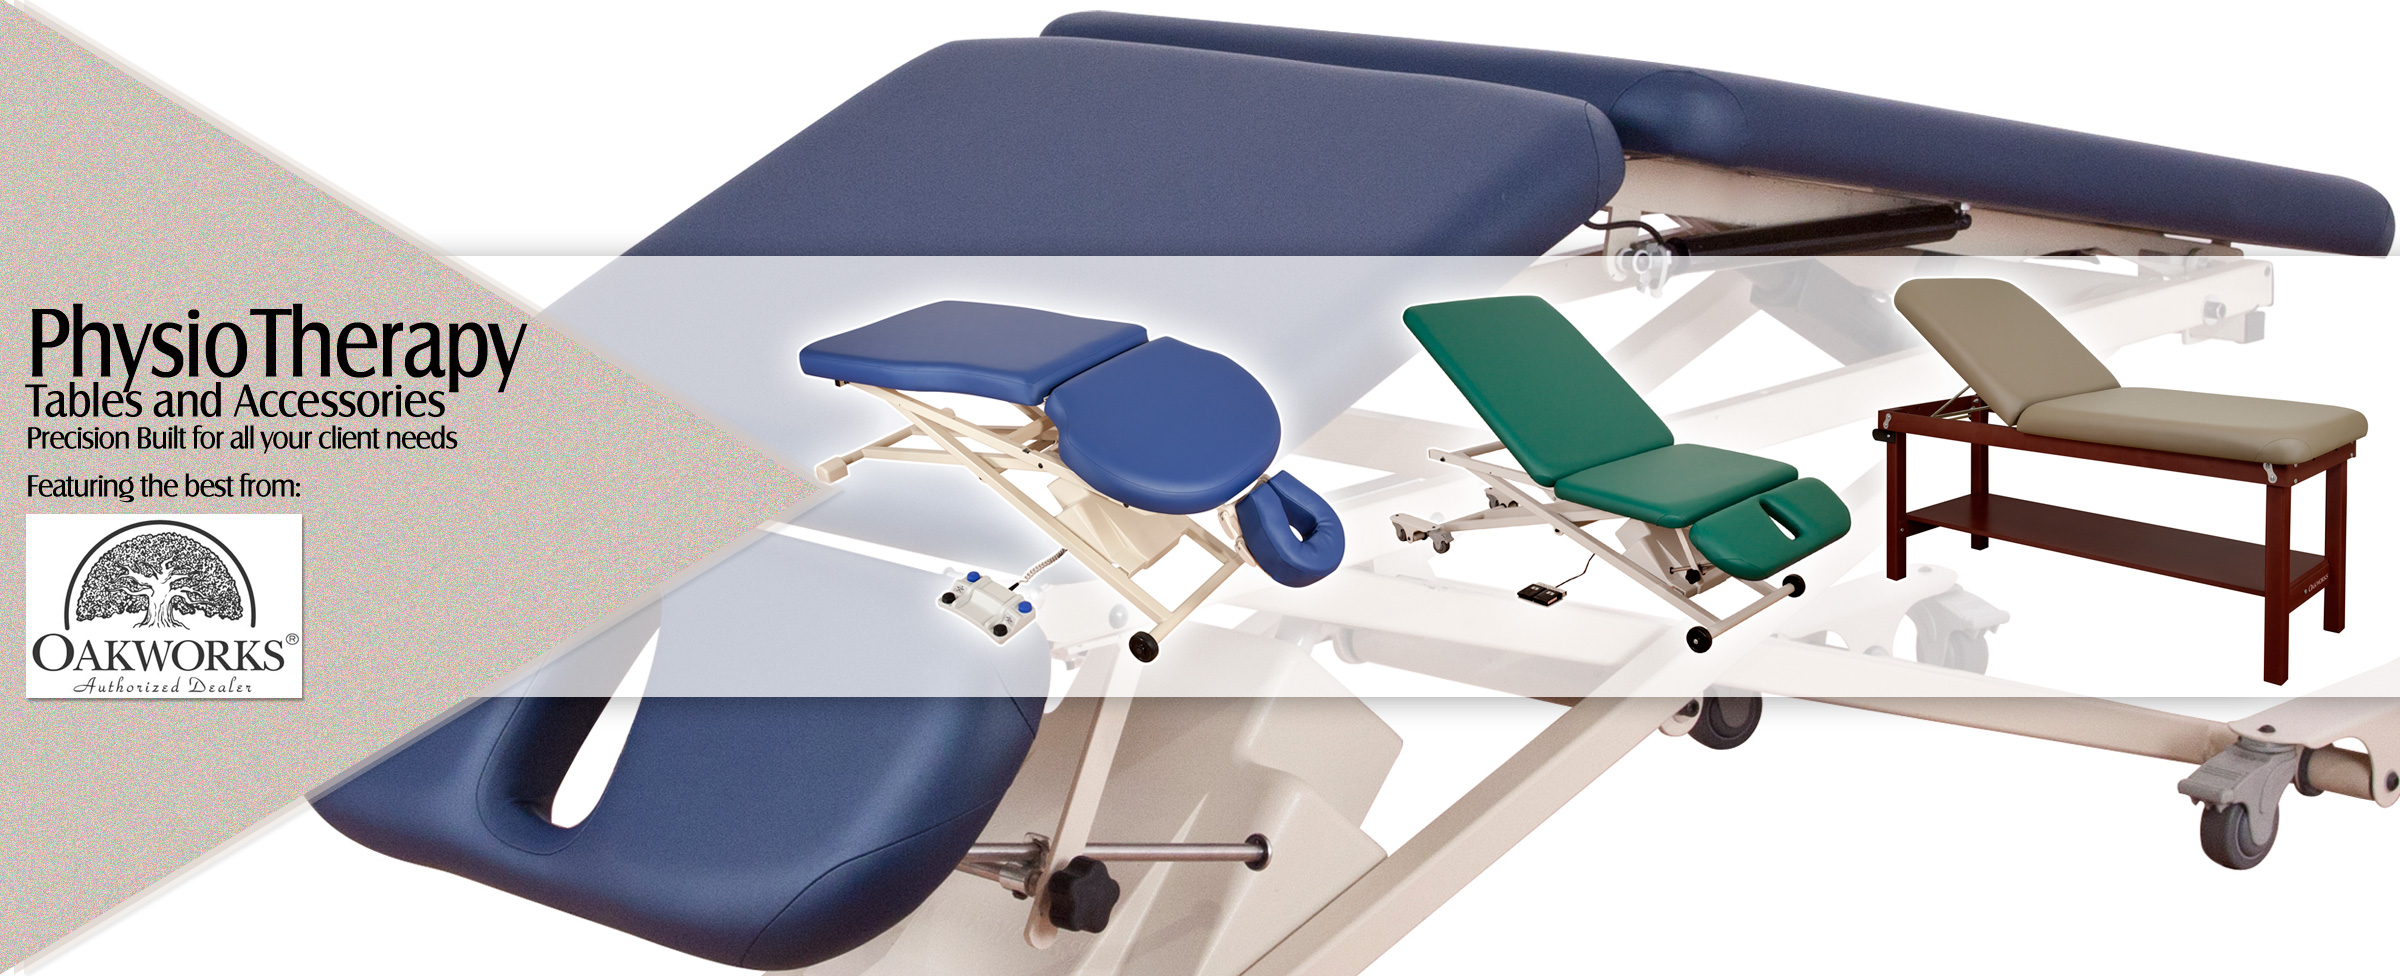 HFG International - Physio Therapy Tables and Accessories